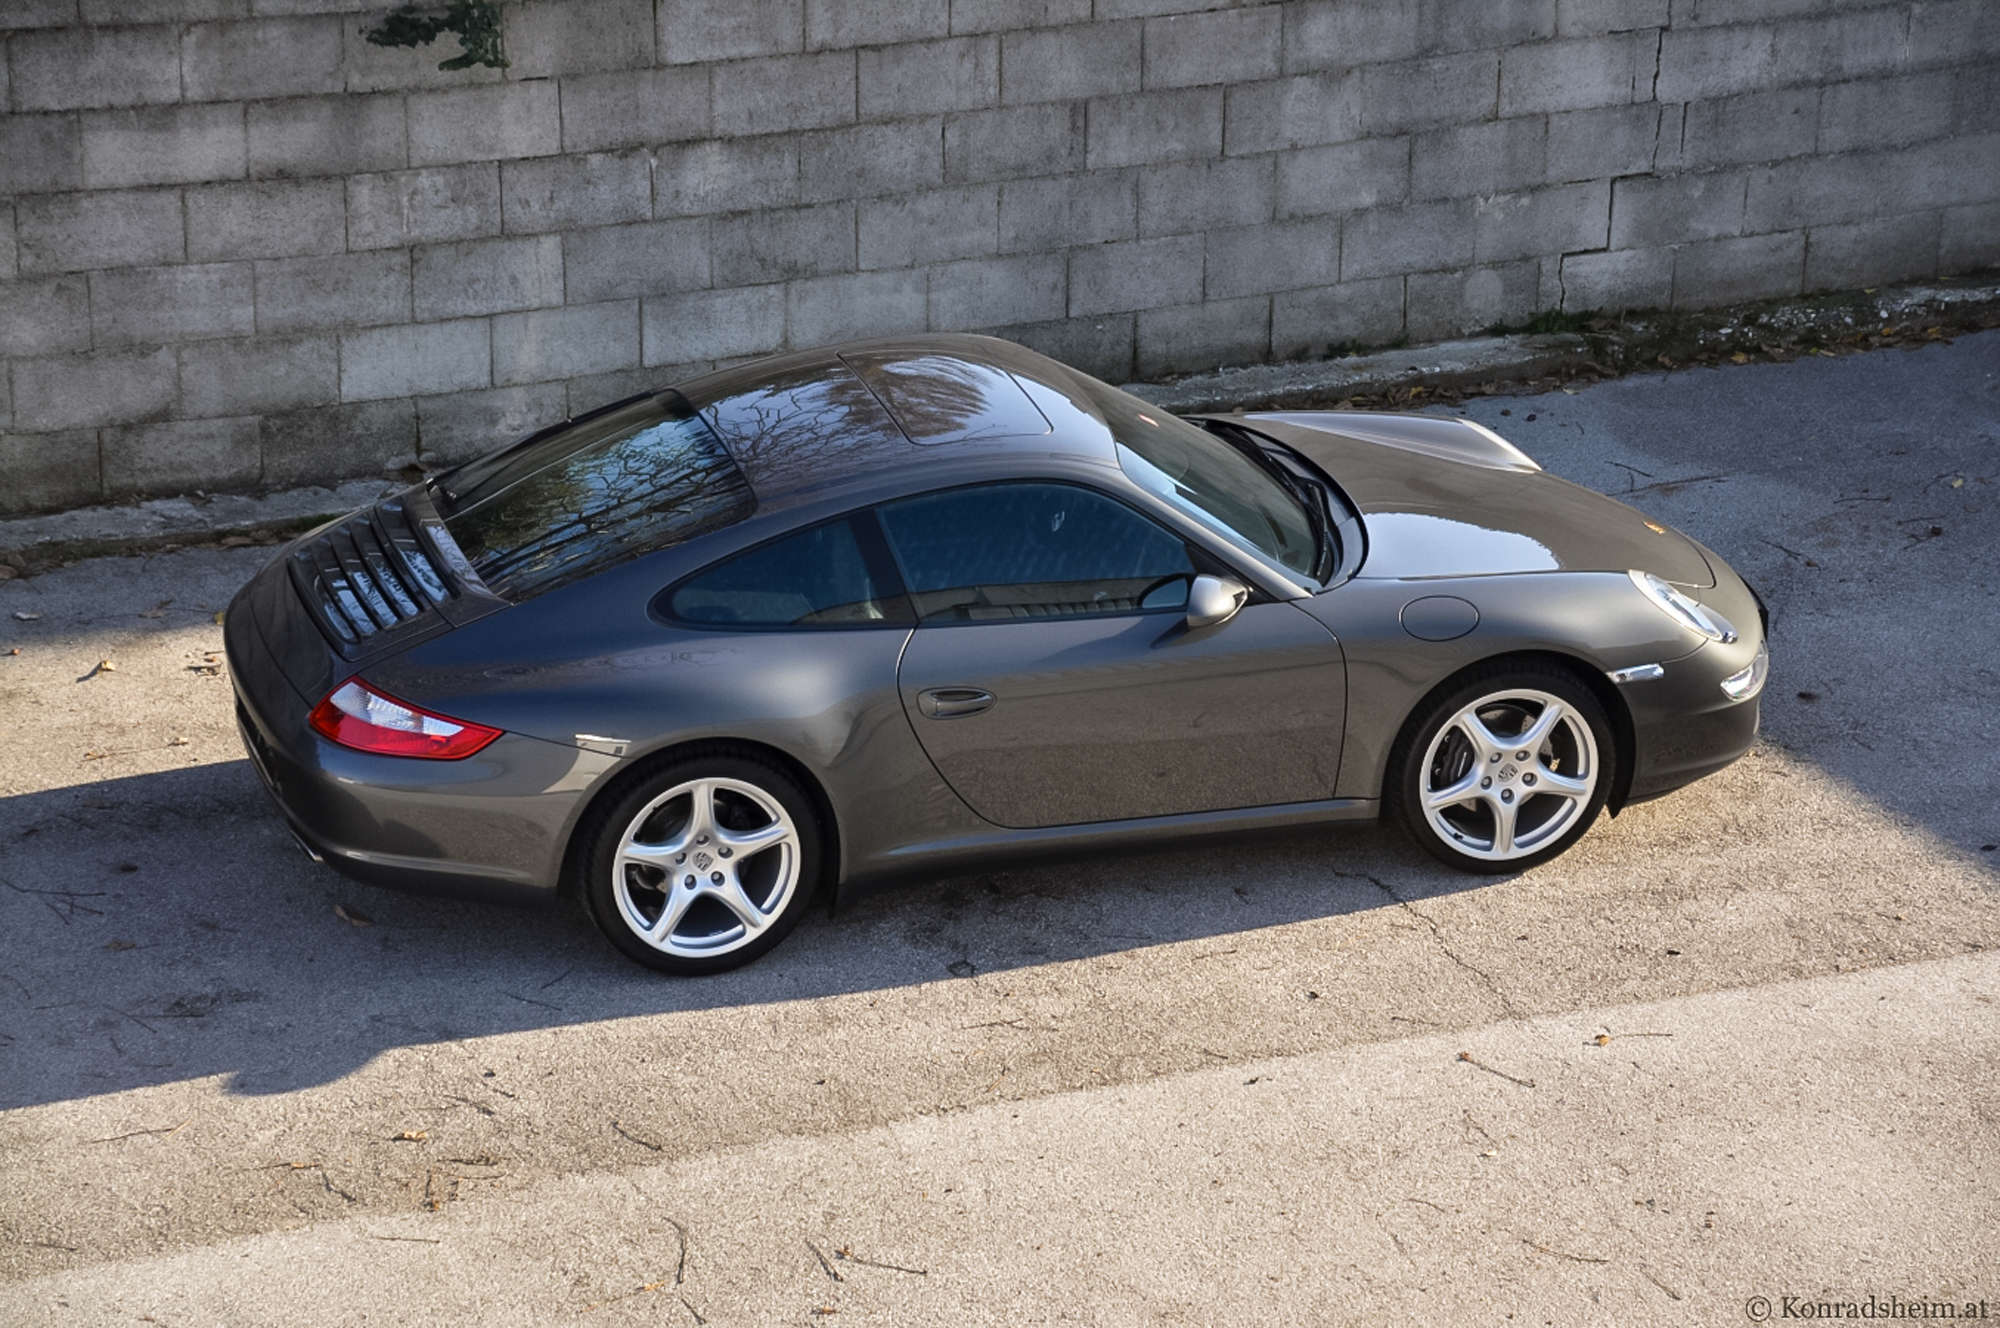 e8d23bf07ba Buyer s Guide Porsche 997.1  5 questions before buying one ...